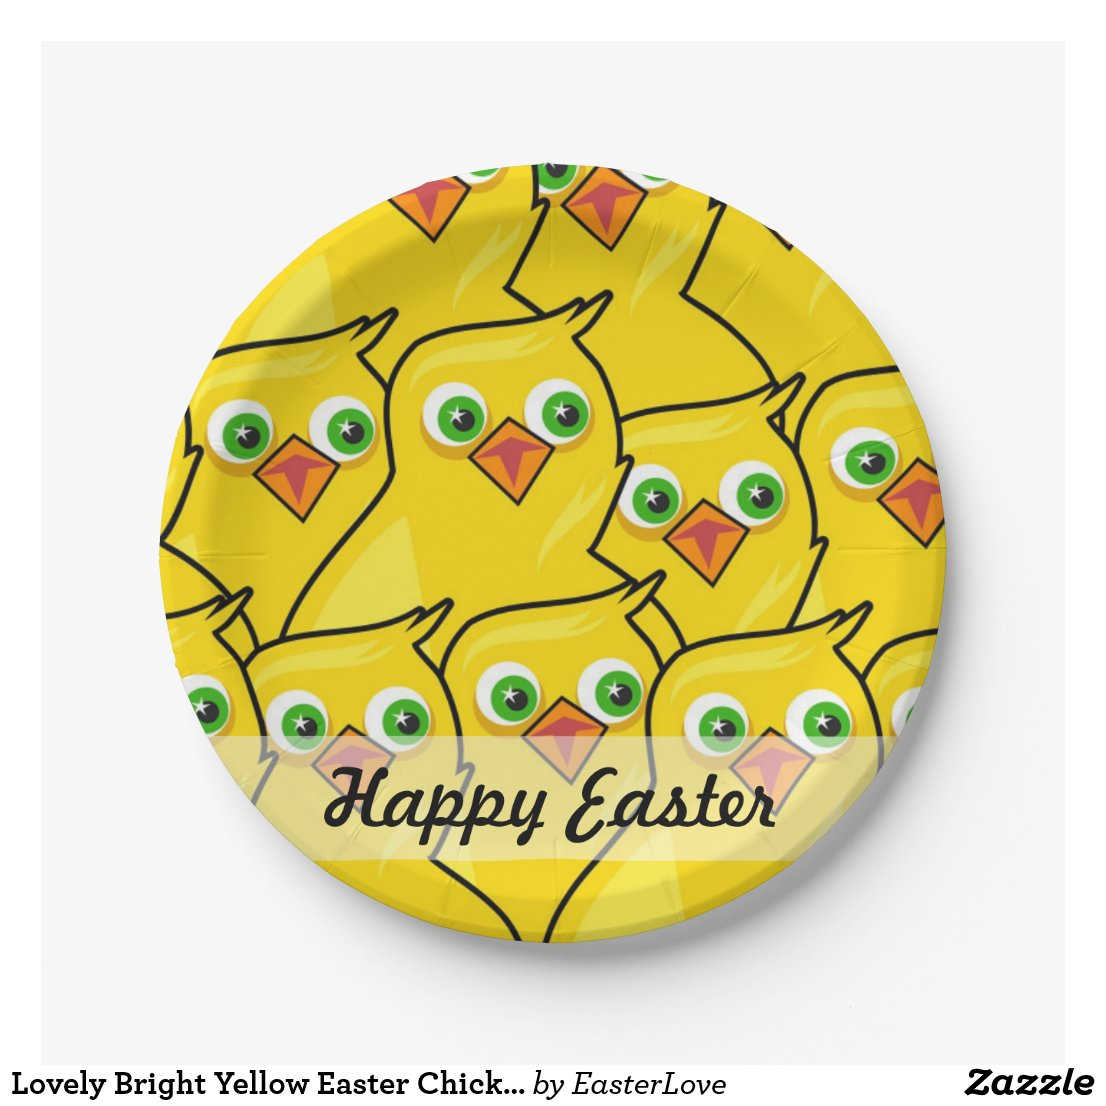 Lovely Bright Yellow Easter Chickens Paper Plate